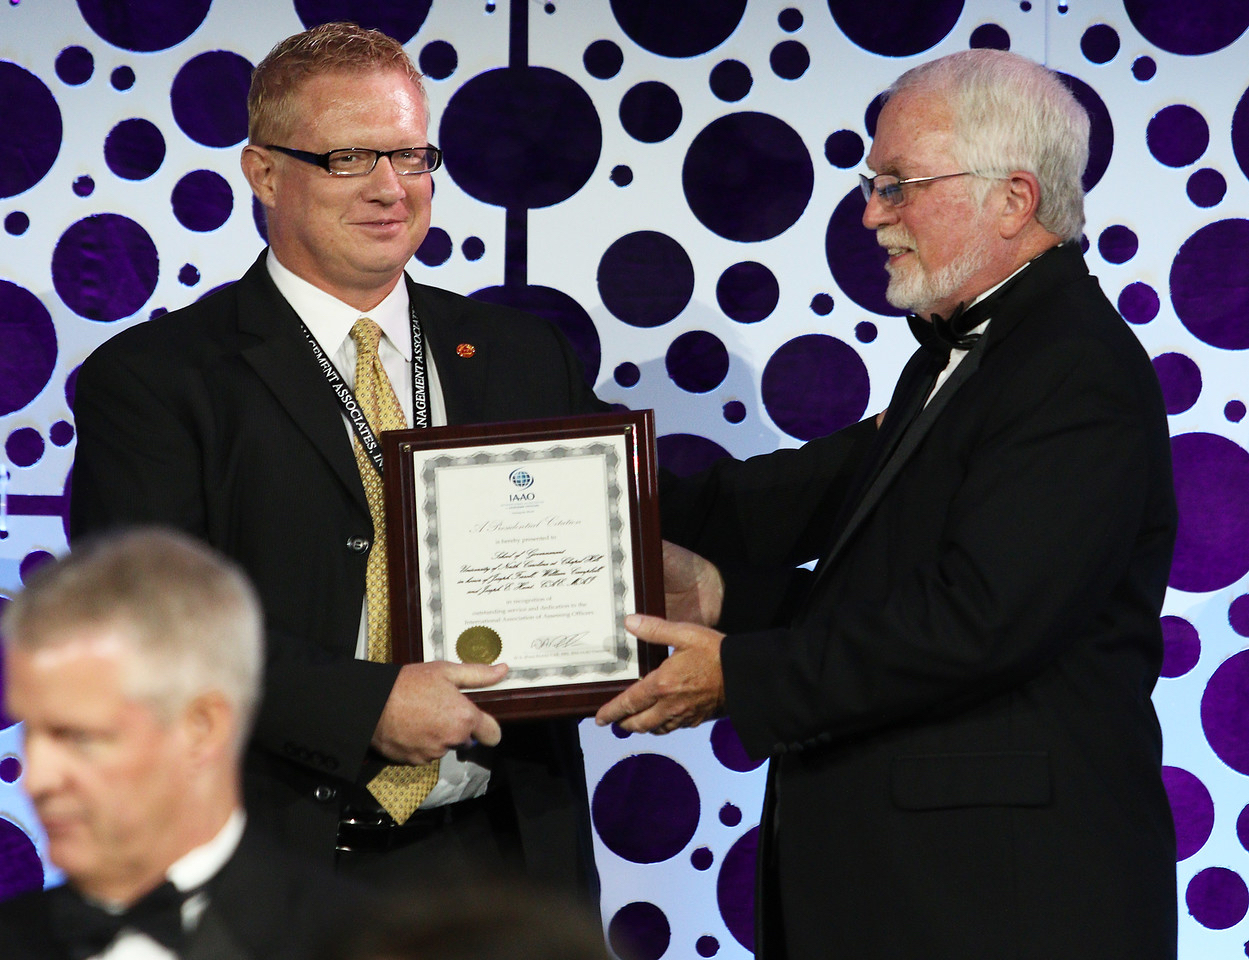 Kirk Boone accepts a Presidential Citation from IAAO